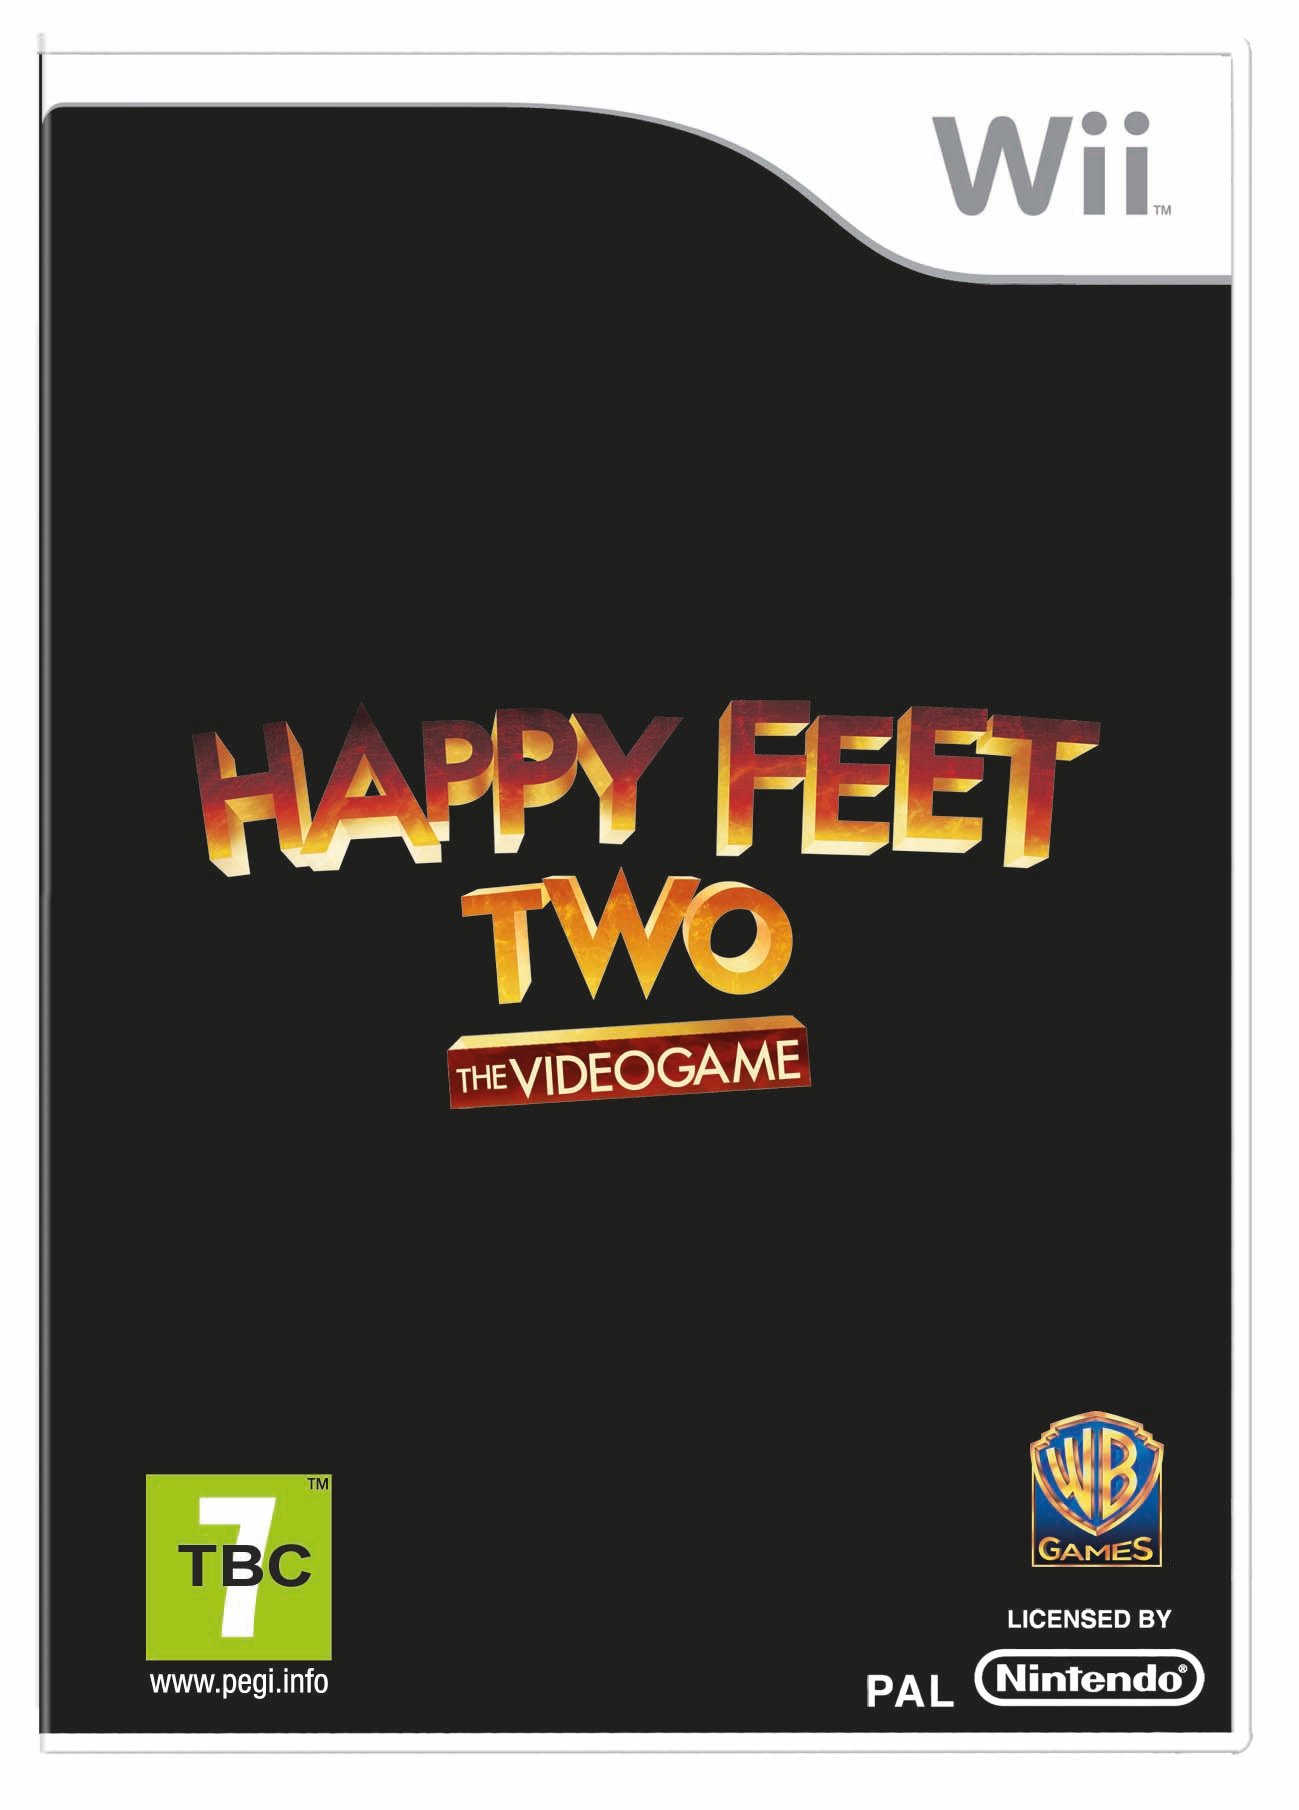 Box art - Happy Feet Two - The Videogame